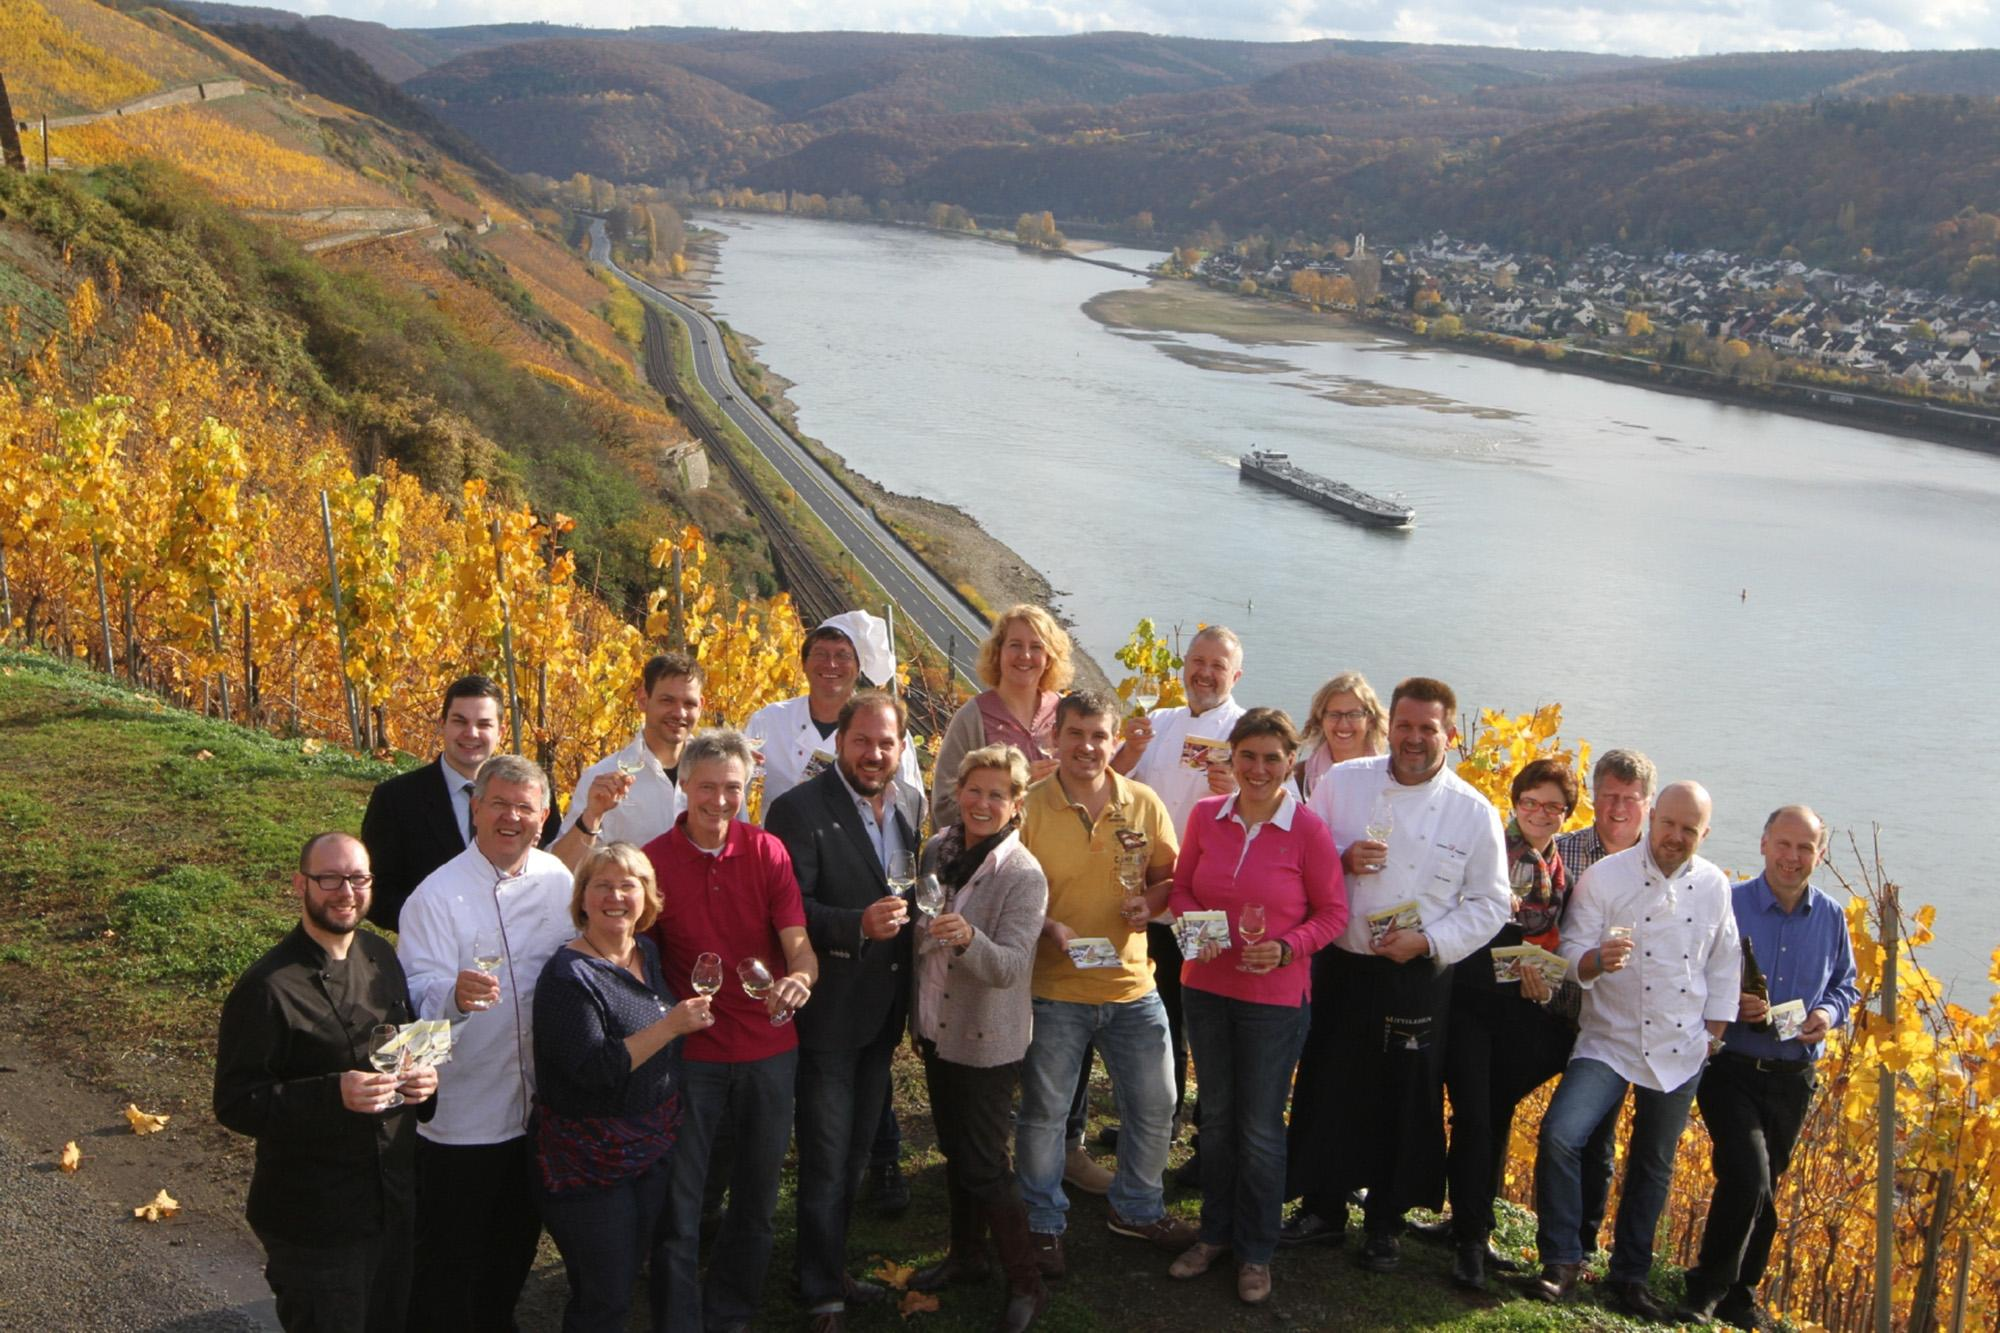 The successful Middlerhine Moments offer a dazzling array of events that combine culinary delights with cultural highlights. – © Suzanne Breitbach / Mittelrhein Wein e.V.